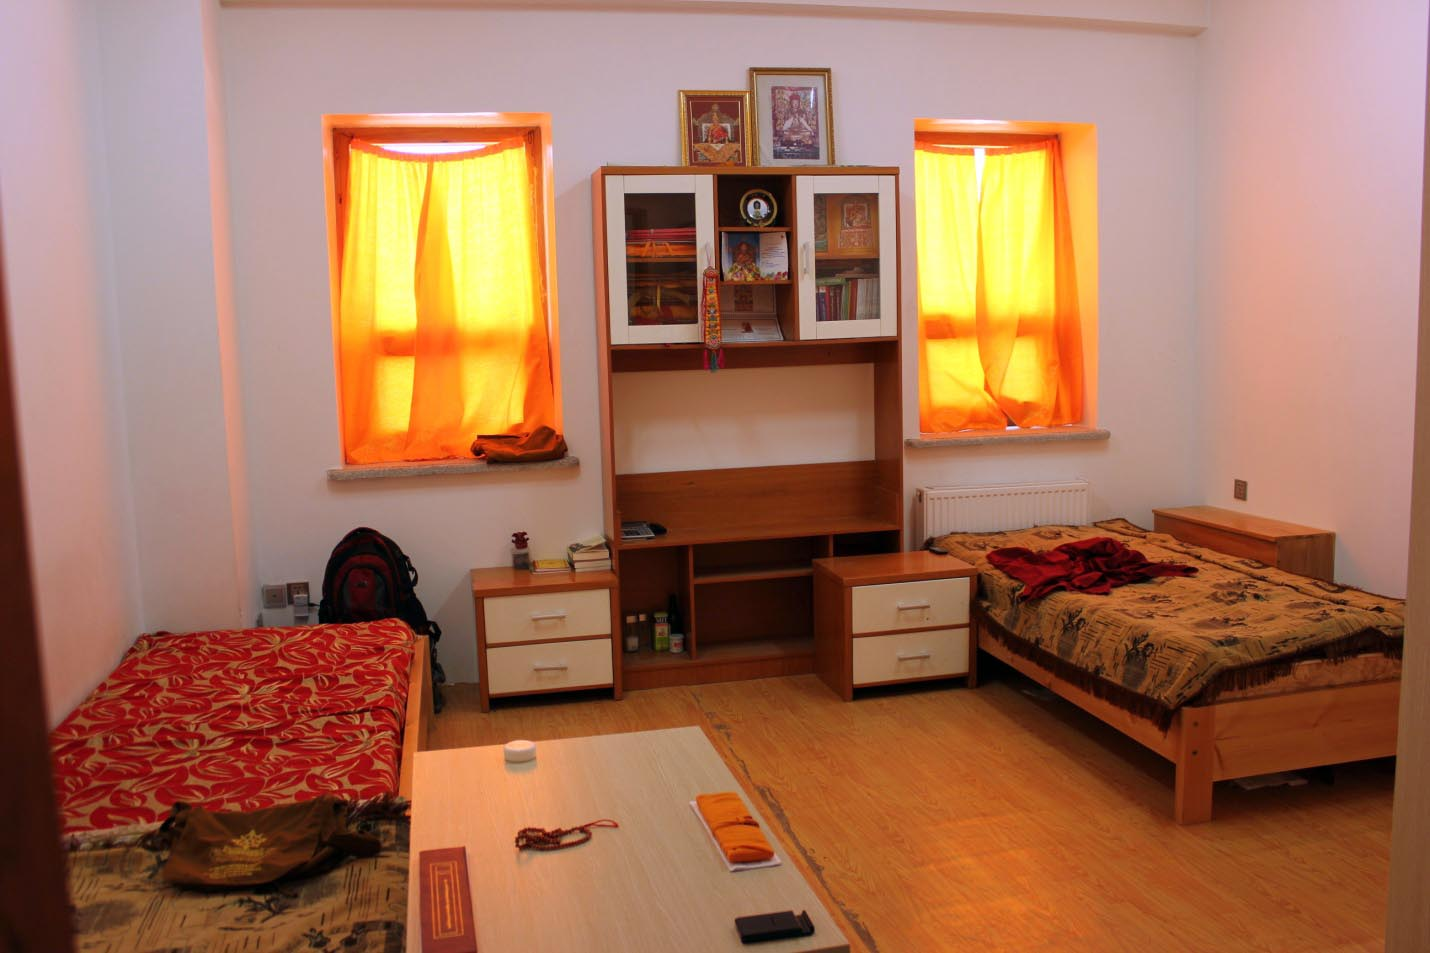 Senior monks' dormitory